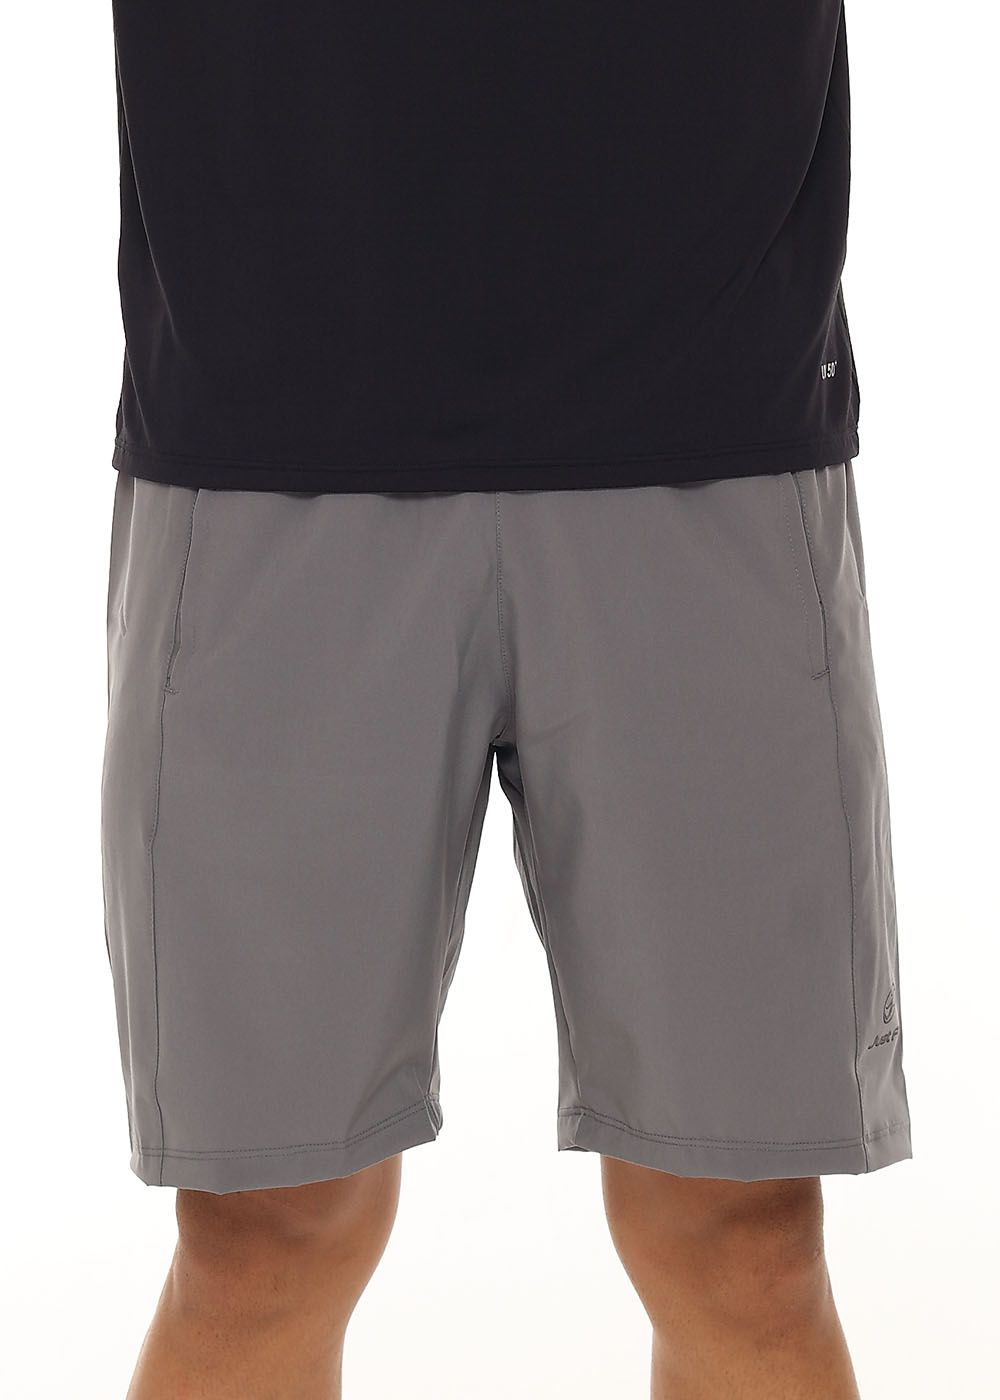 BERMUDA MASCULINA CLUB FIT - CINZA